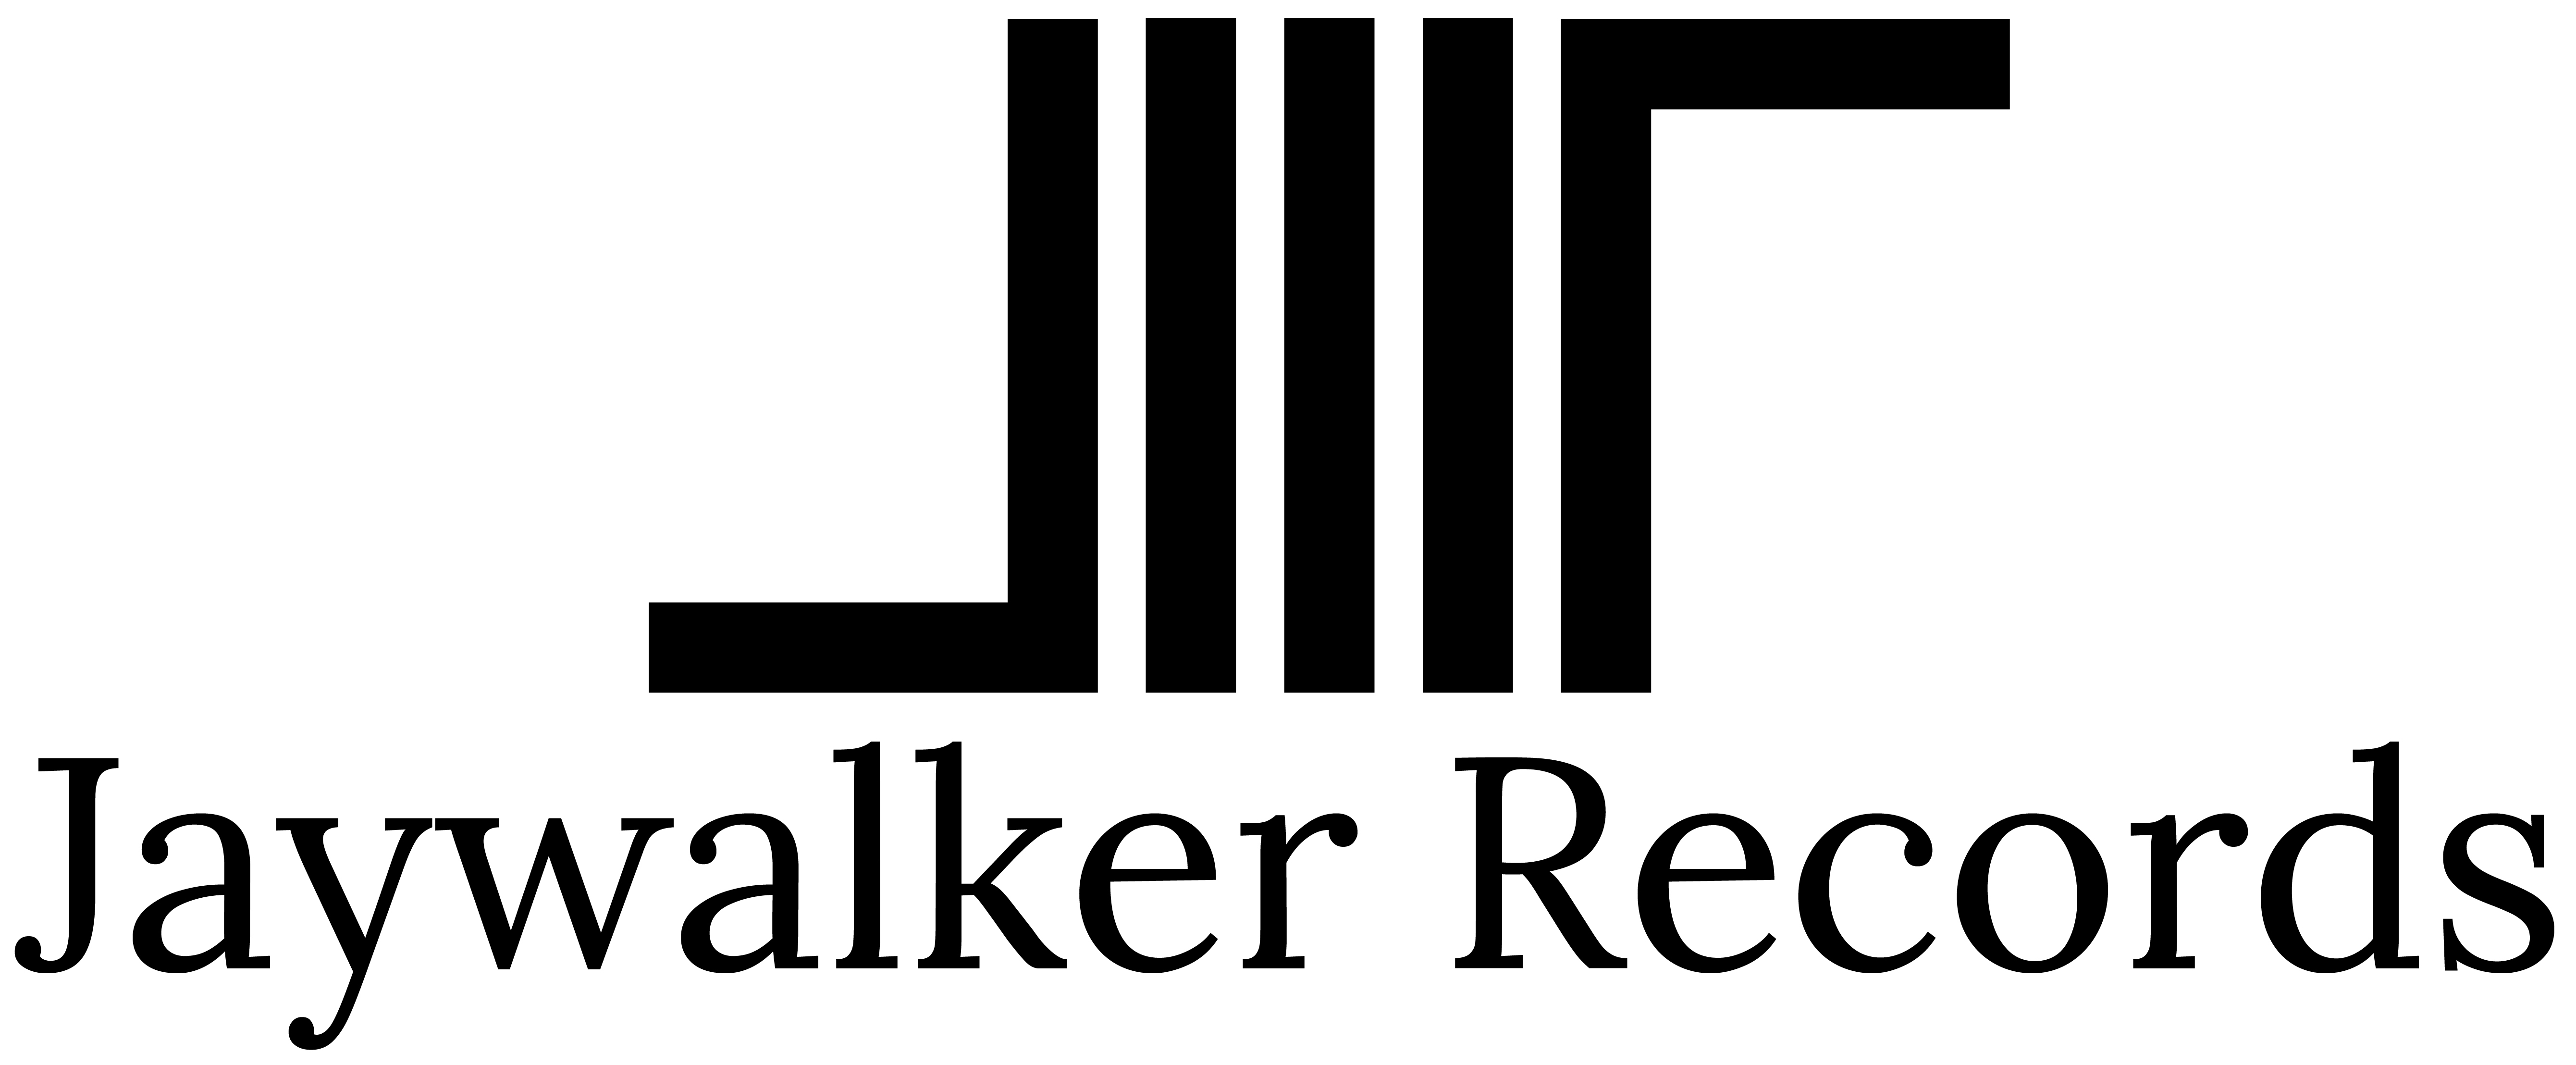 Jaywalker Records logo